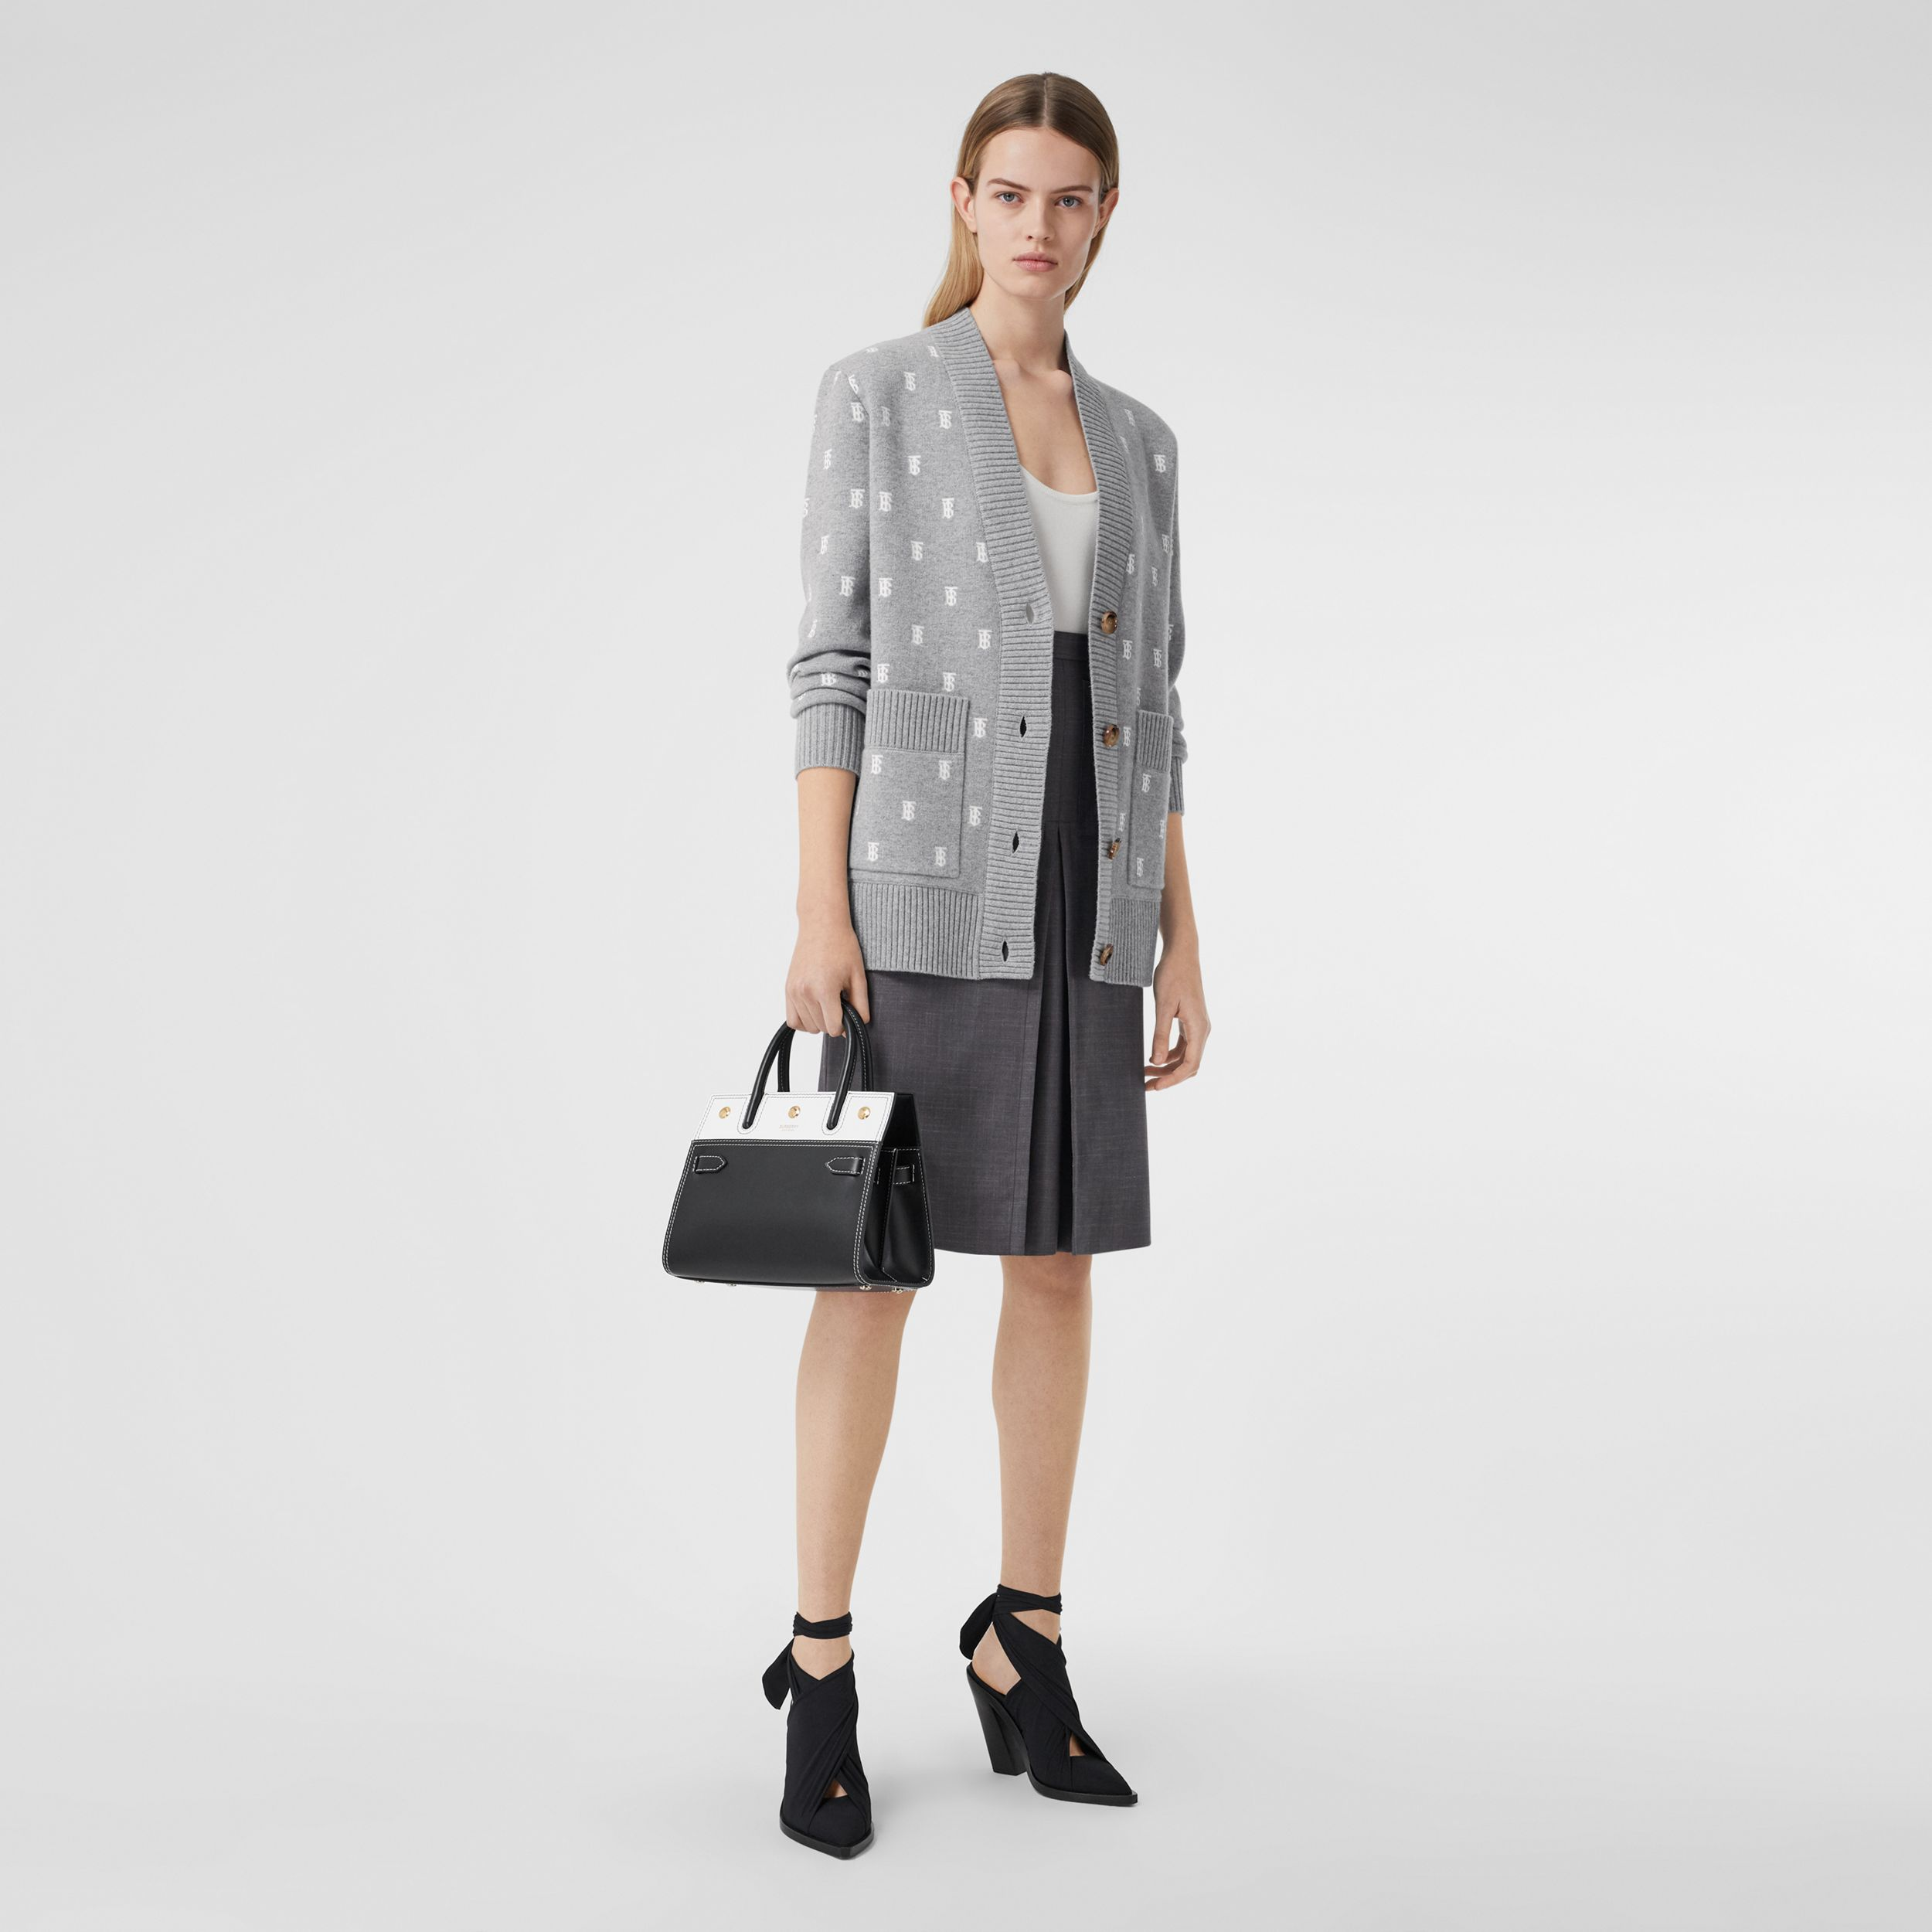 Monogram Wool Cashmere Blend Oversized Cardigan in Mid Grey Melange - Women | Burberry - 1